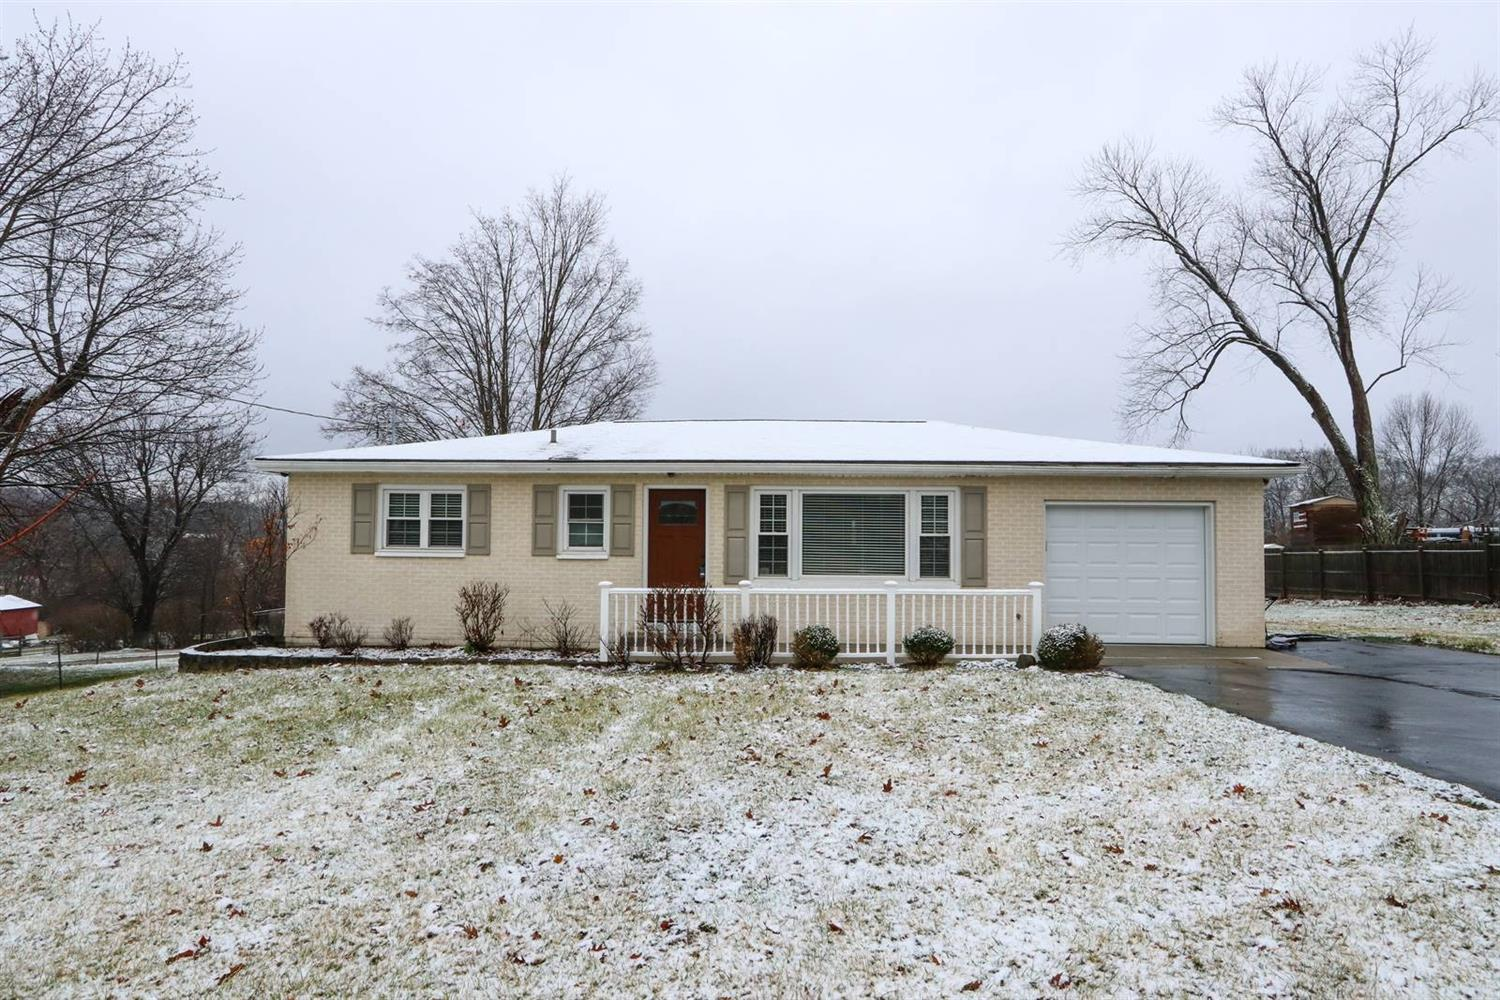 Property for sale at 1954 S Us Rt 42, Turtle Creek Twp,  Ohio 45036